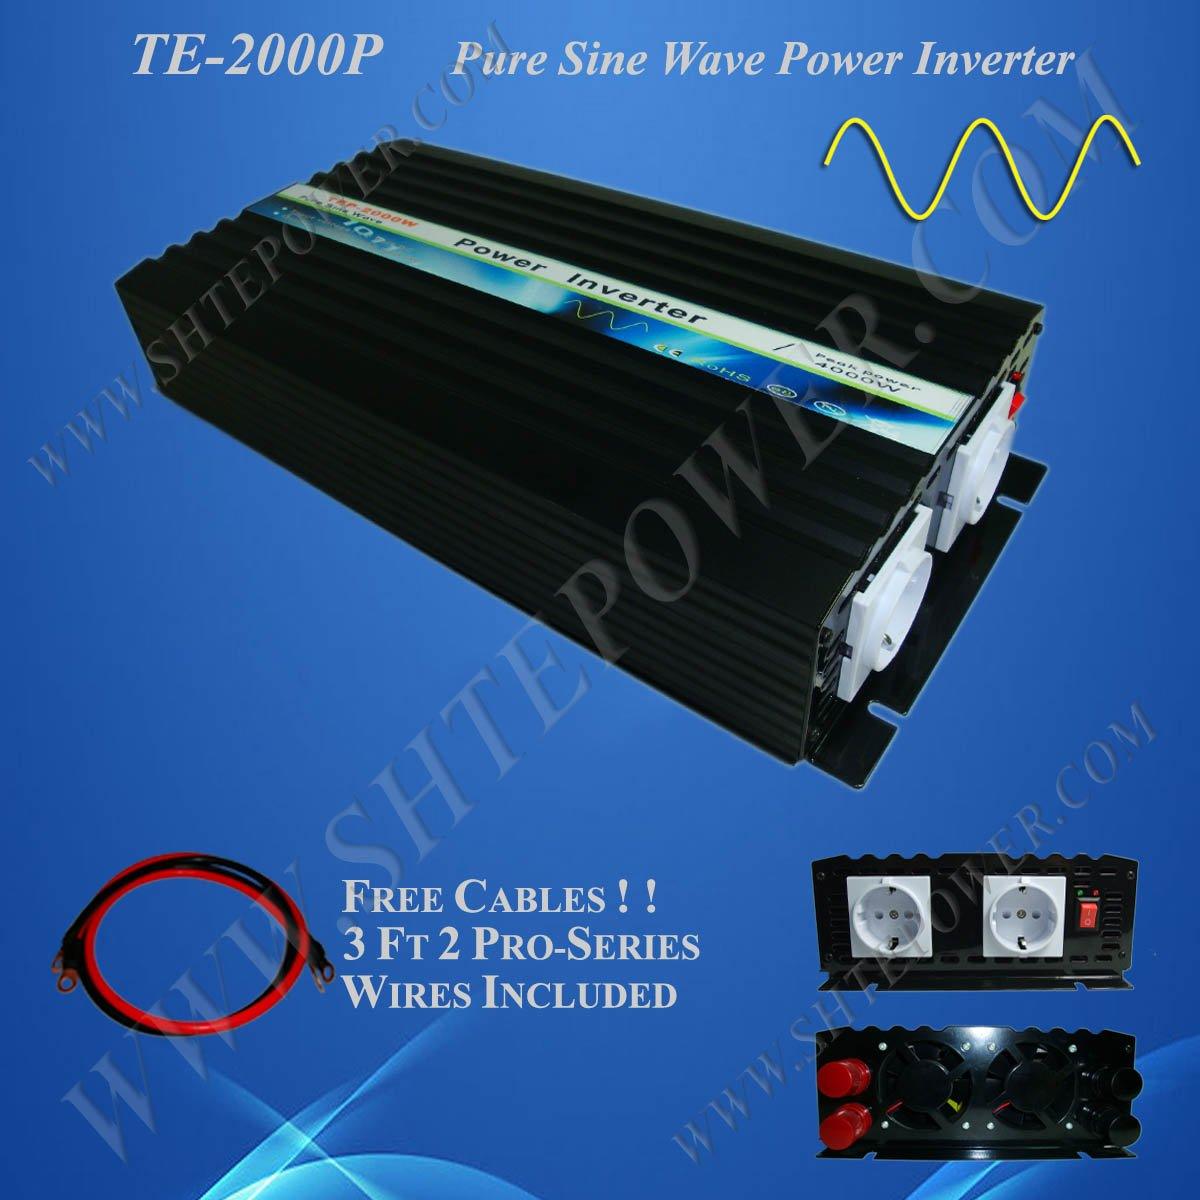 12v inverter 2000 watt 12v/120v 2000w pure sine wave inverter 12v 240v inverter act112 12v